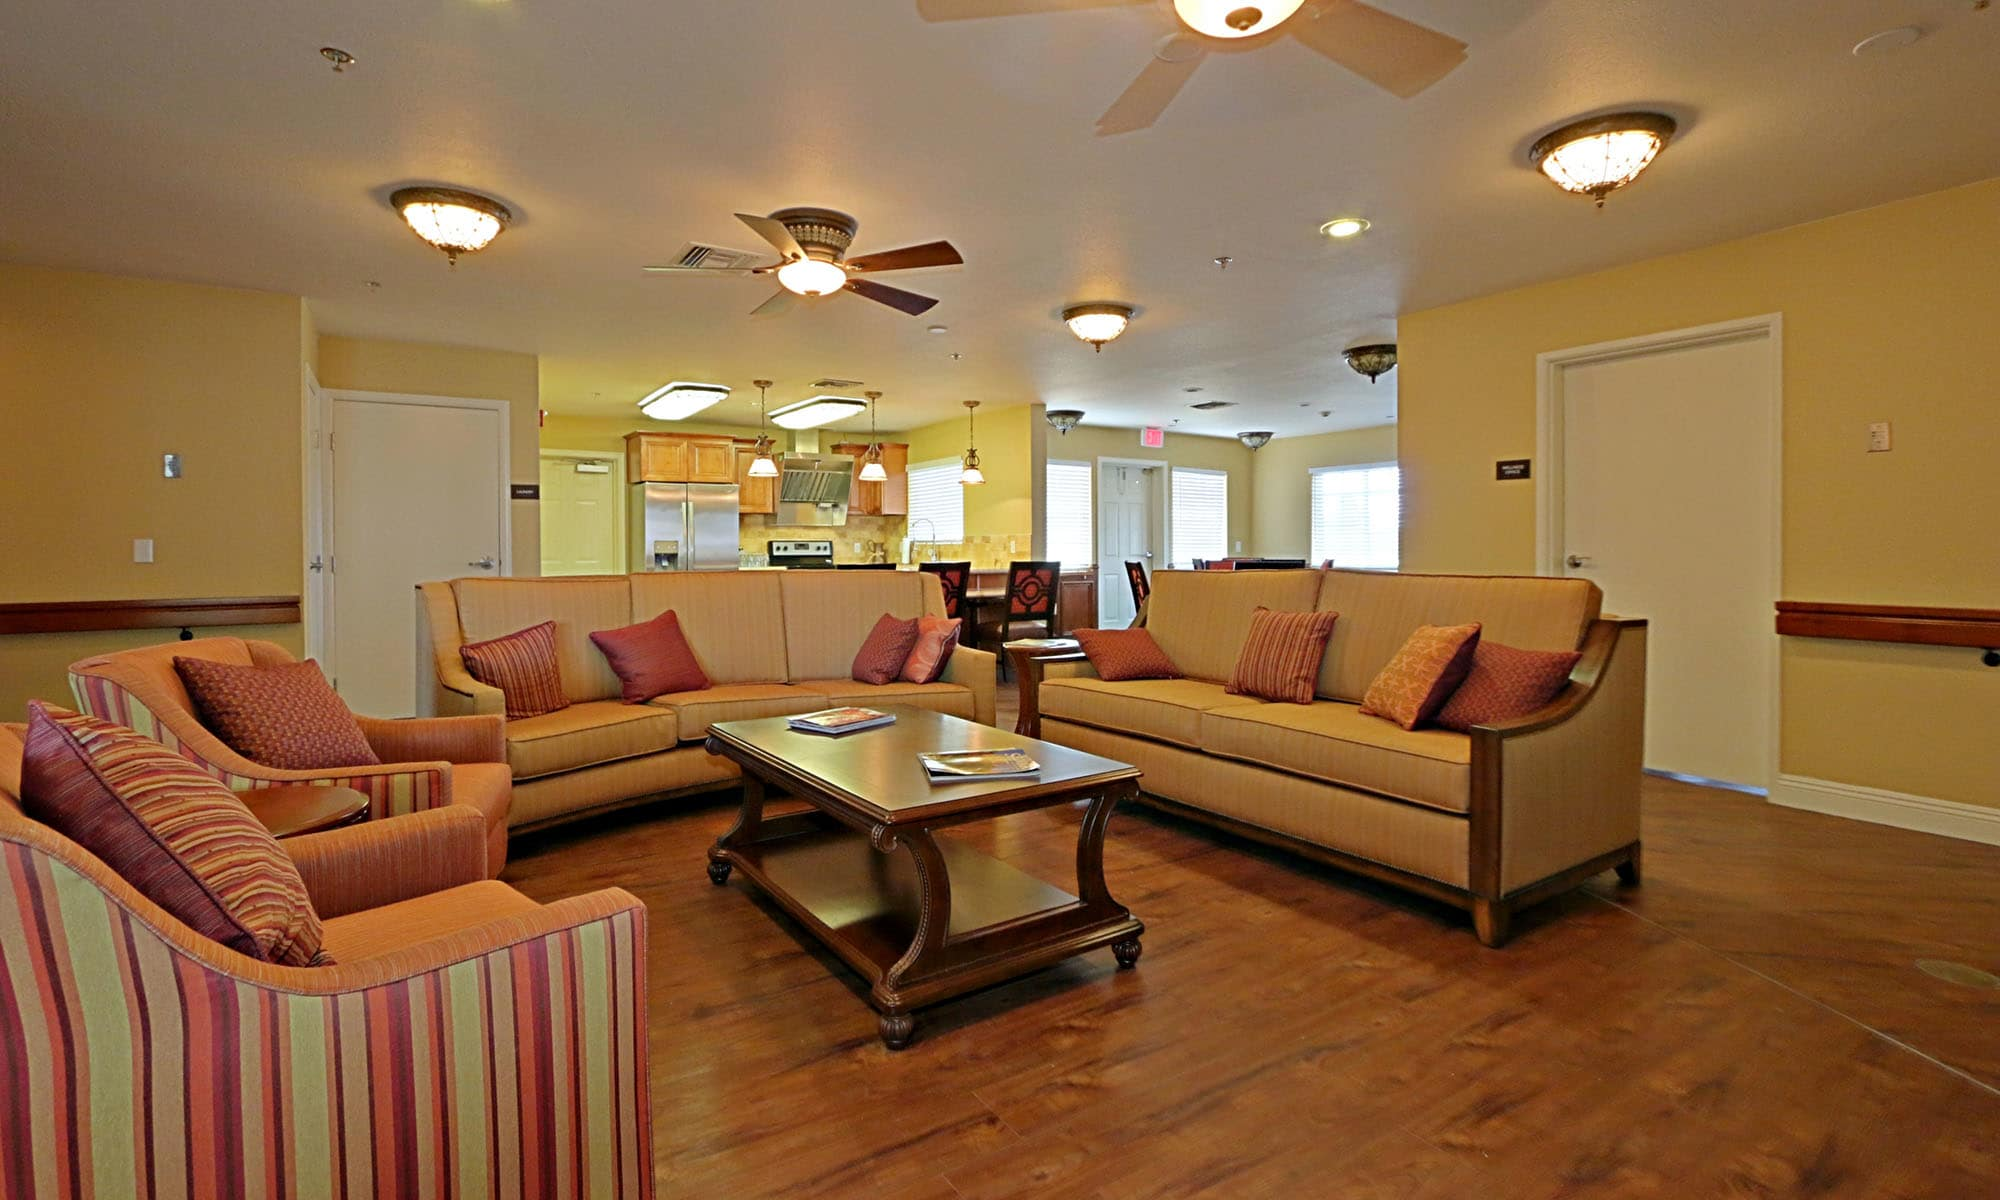 Pacifica Senior Living Peoria interior lobby